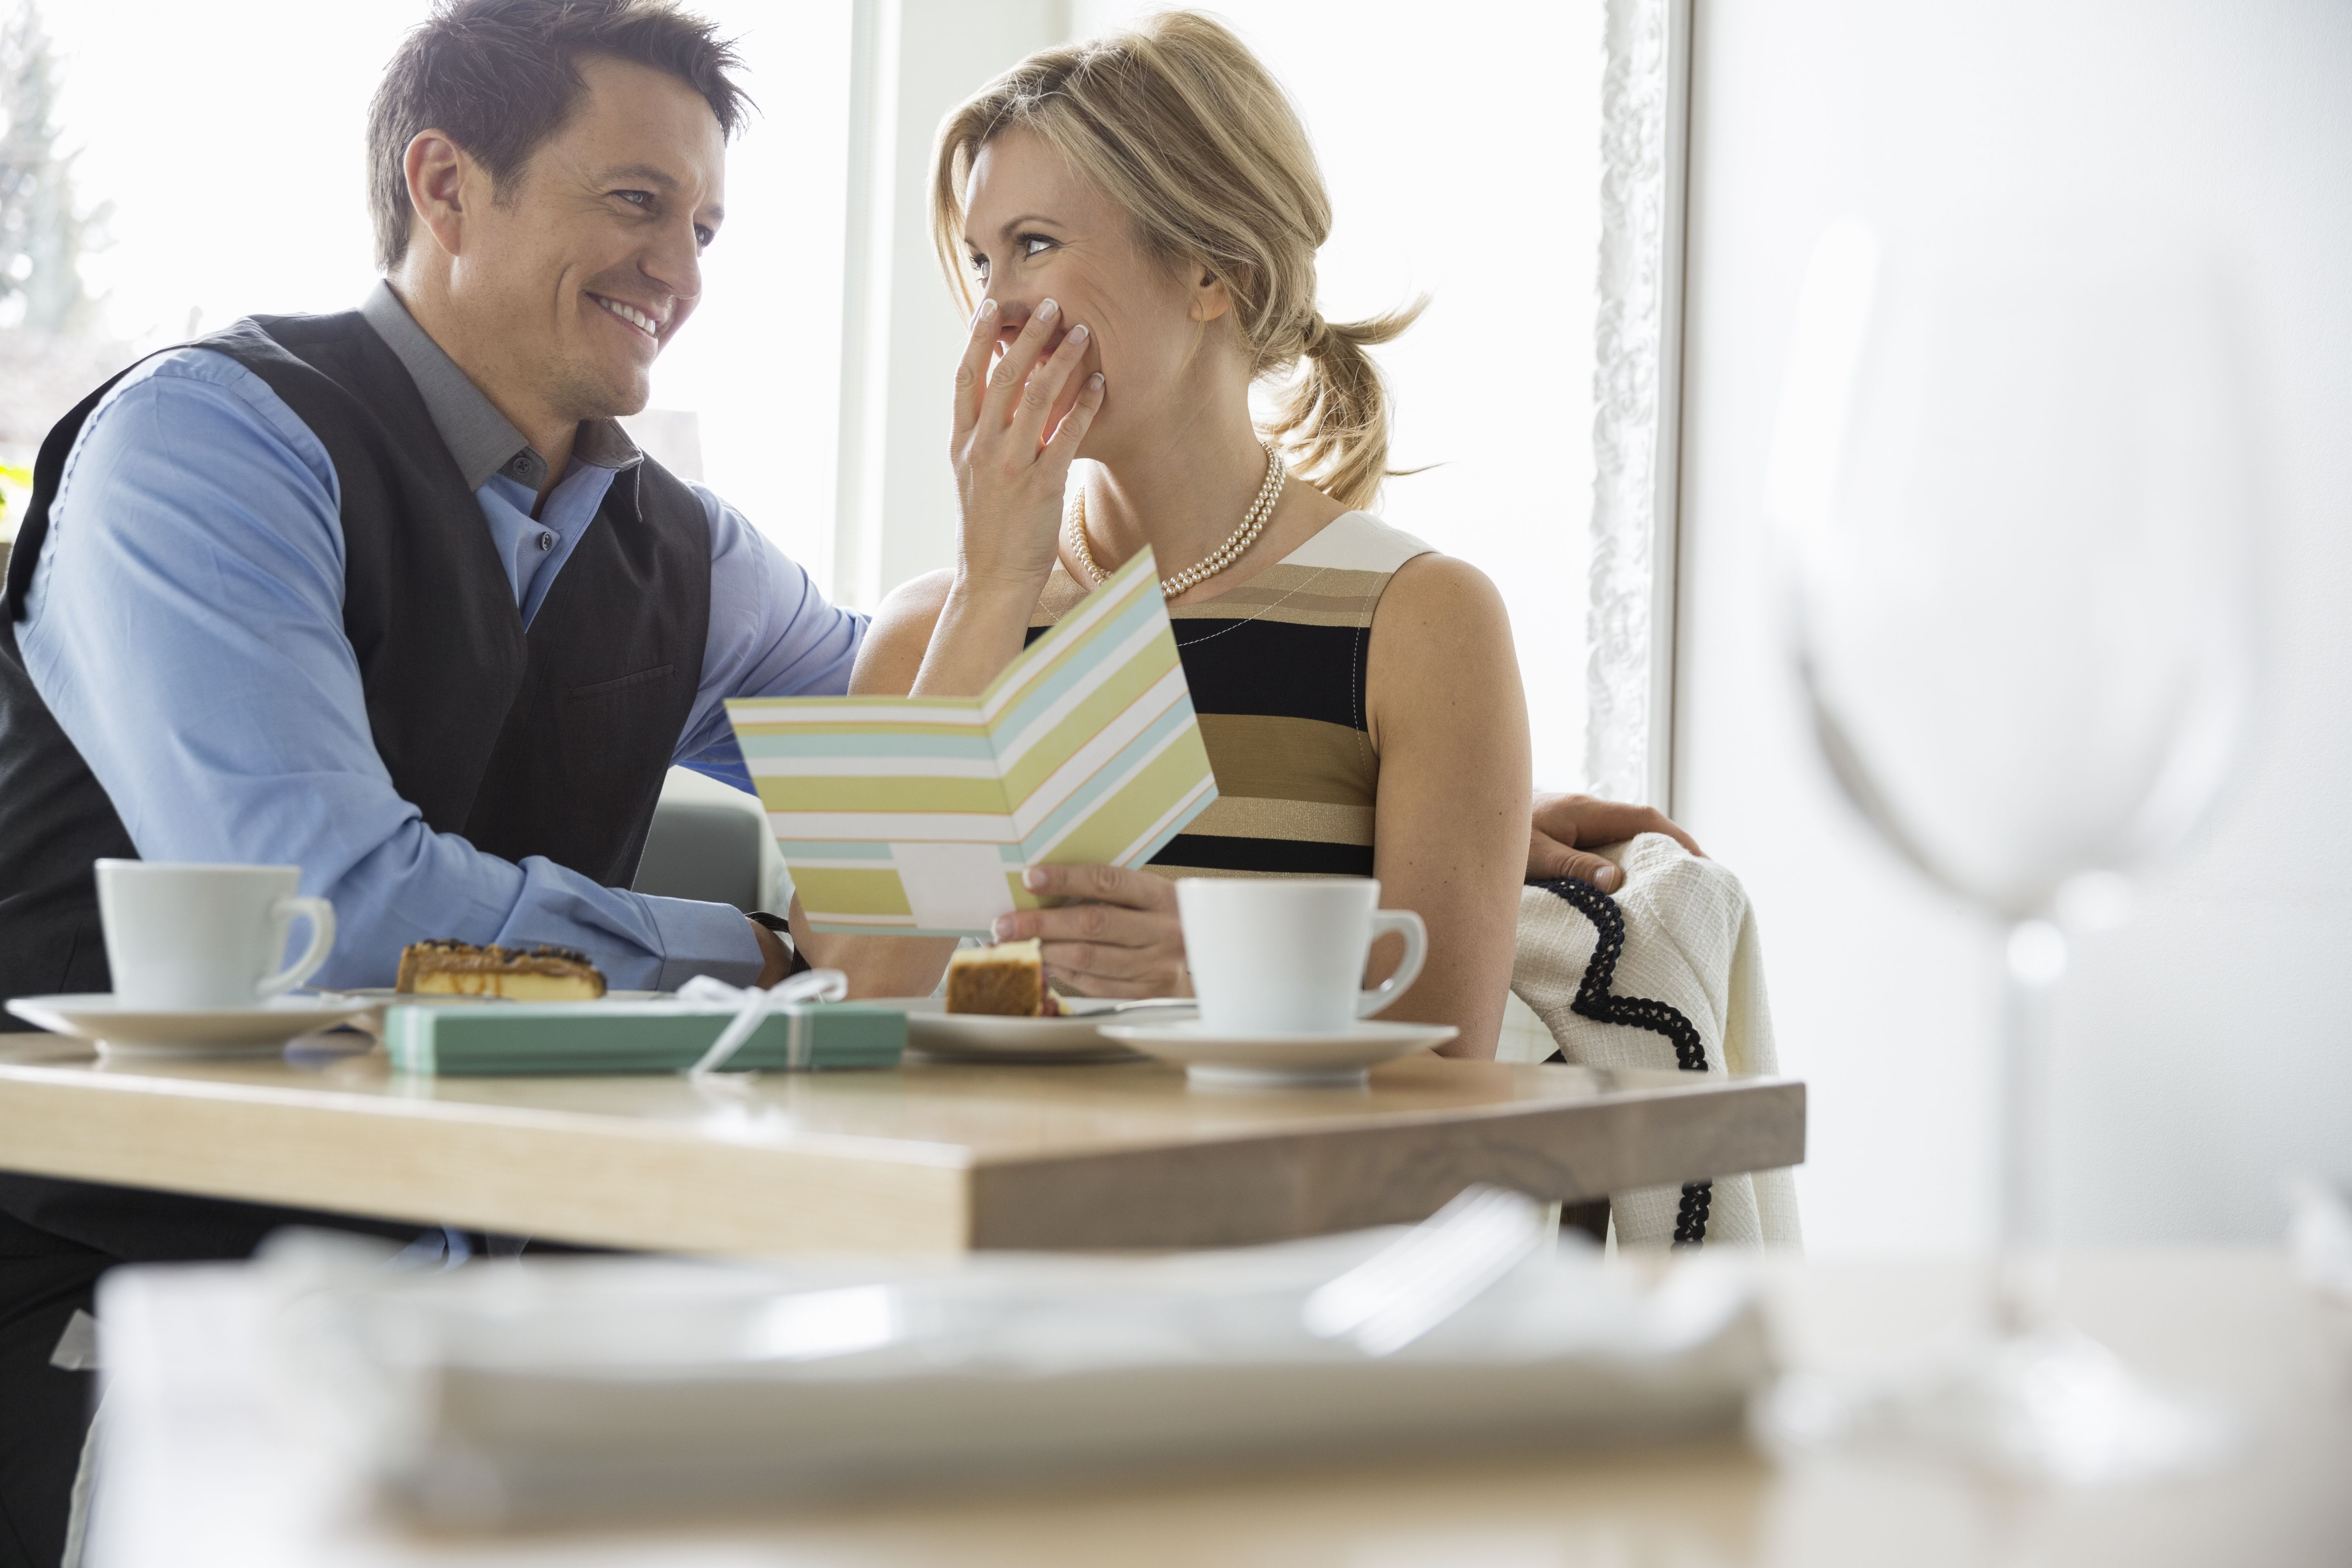 Man surprising woman with card